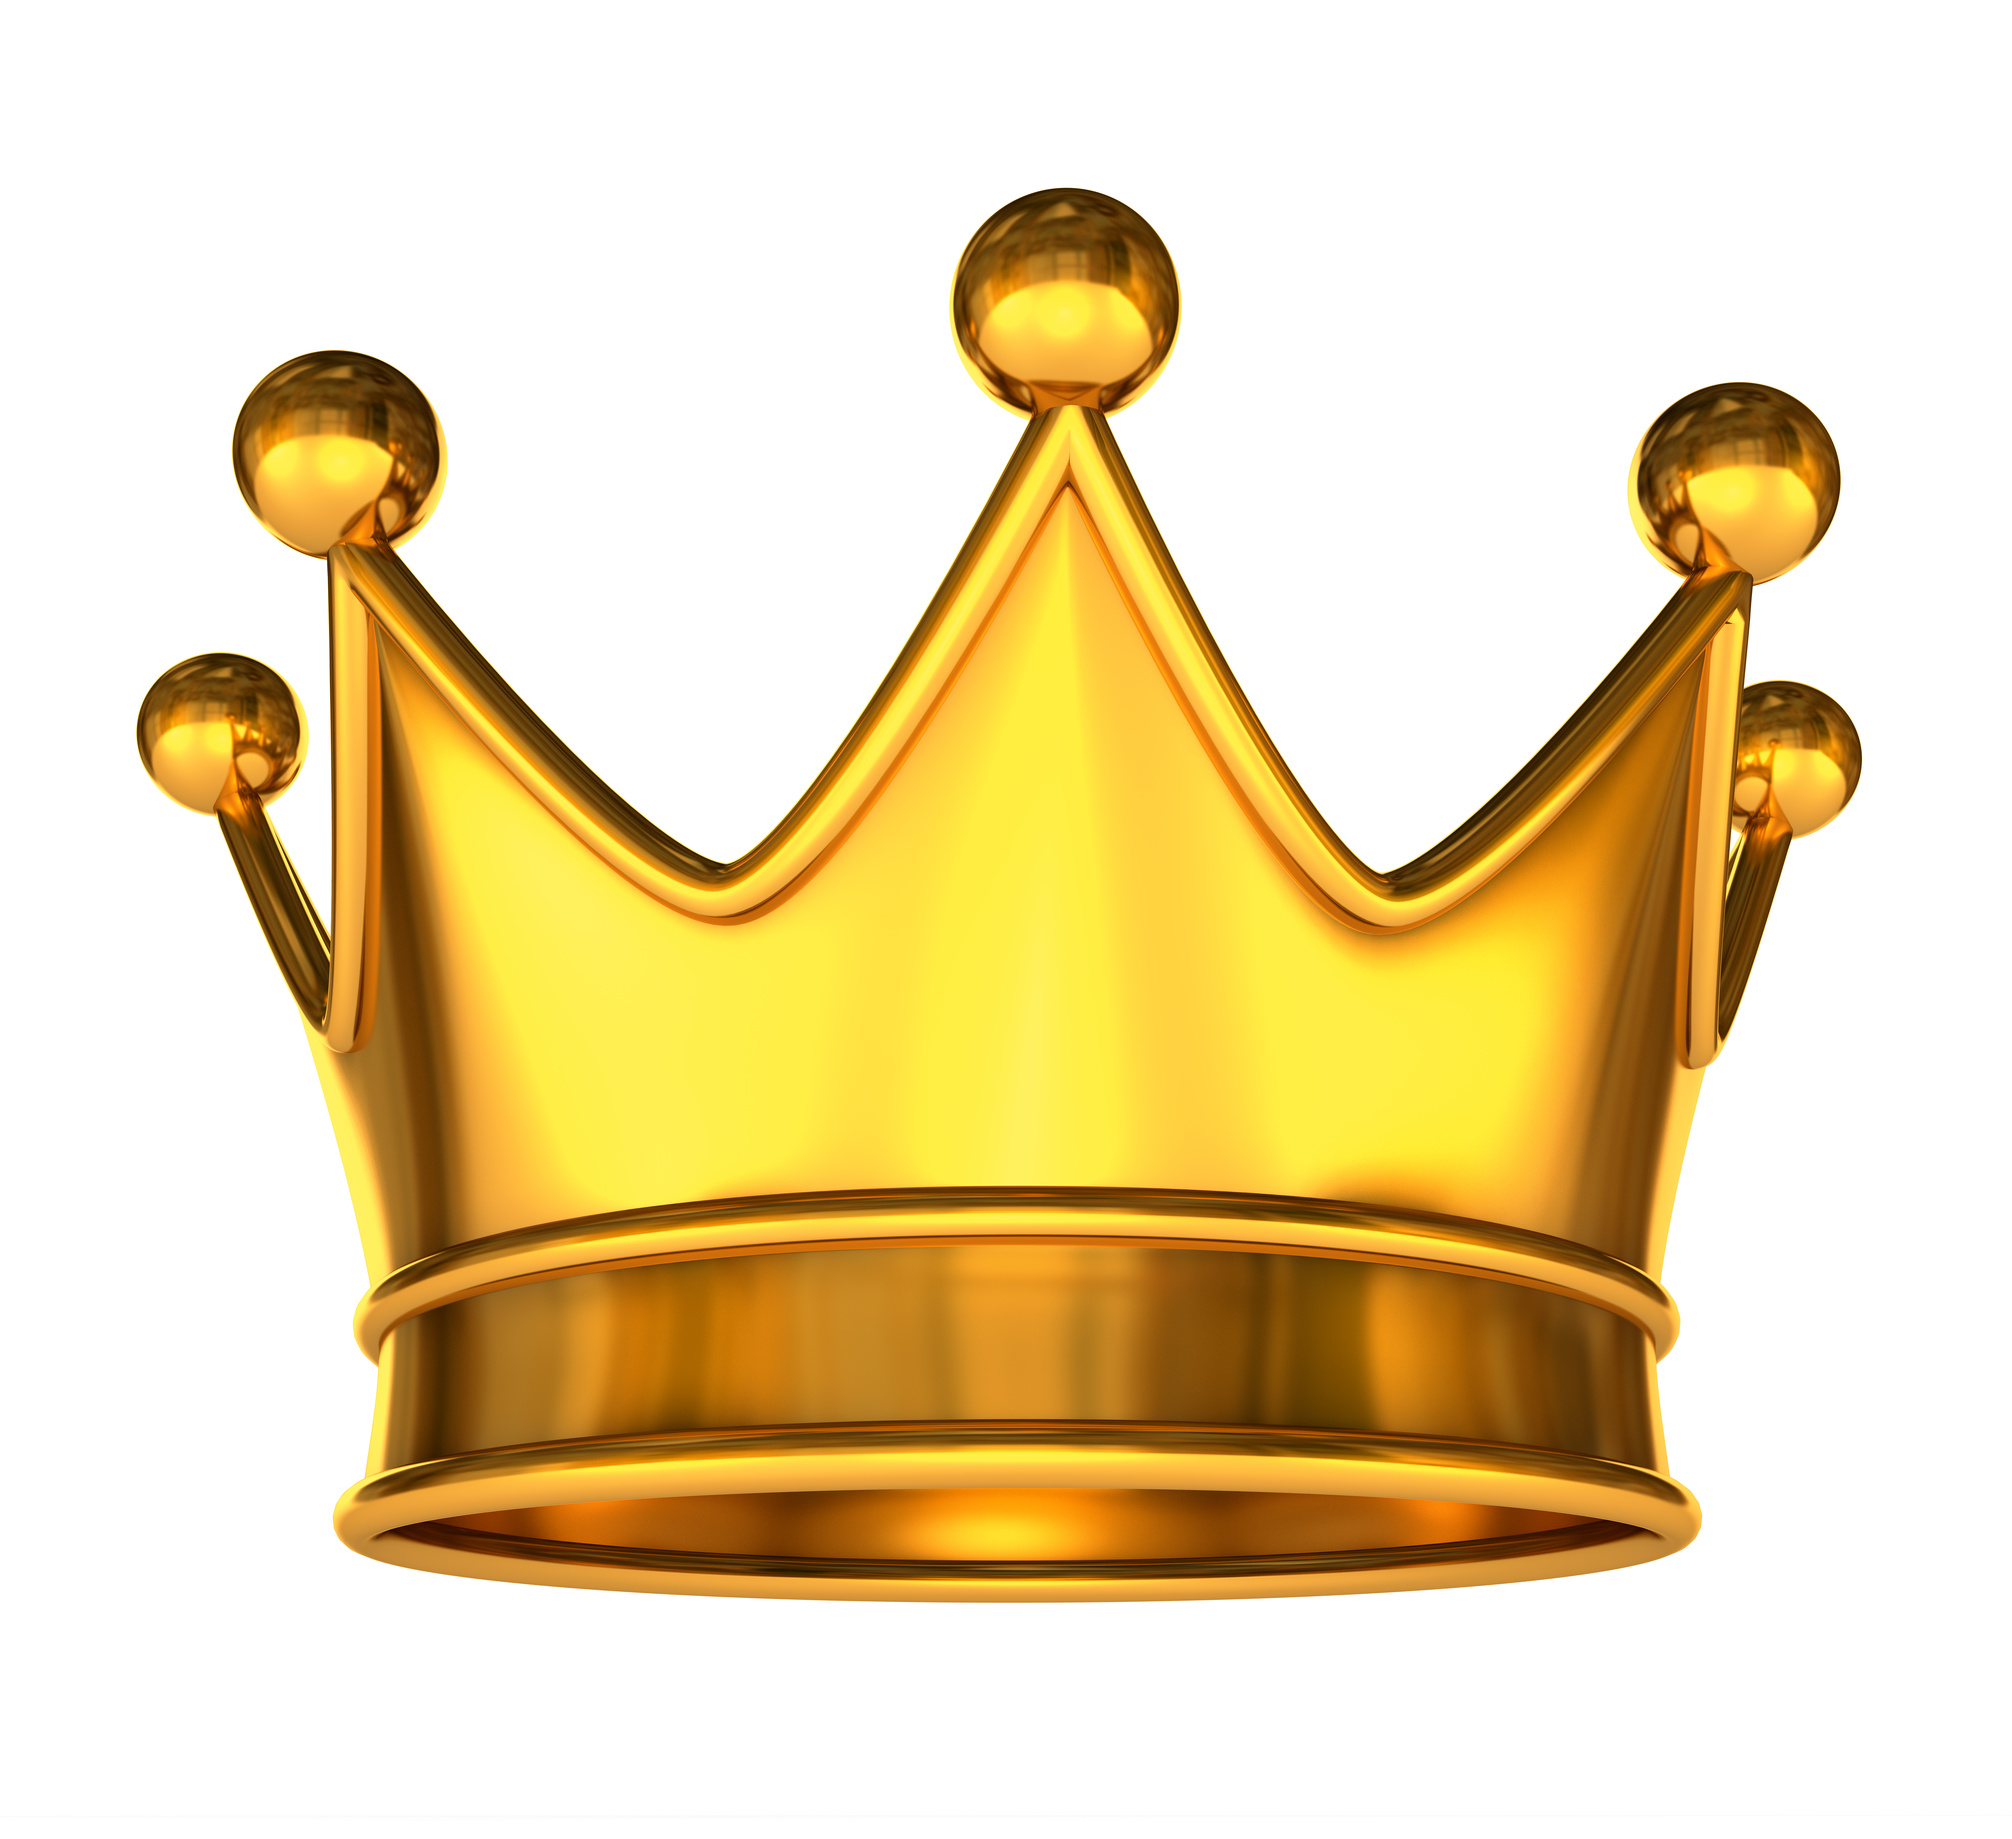 Gold Crown King Clipart on King And Queen Clip Art